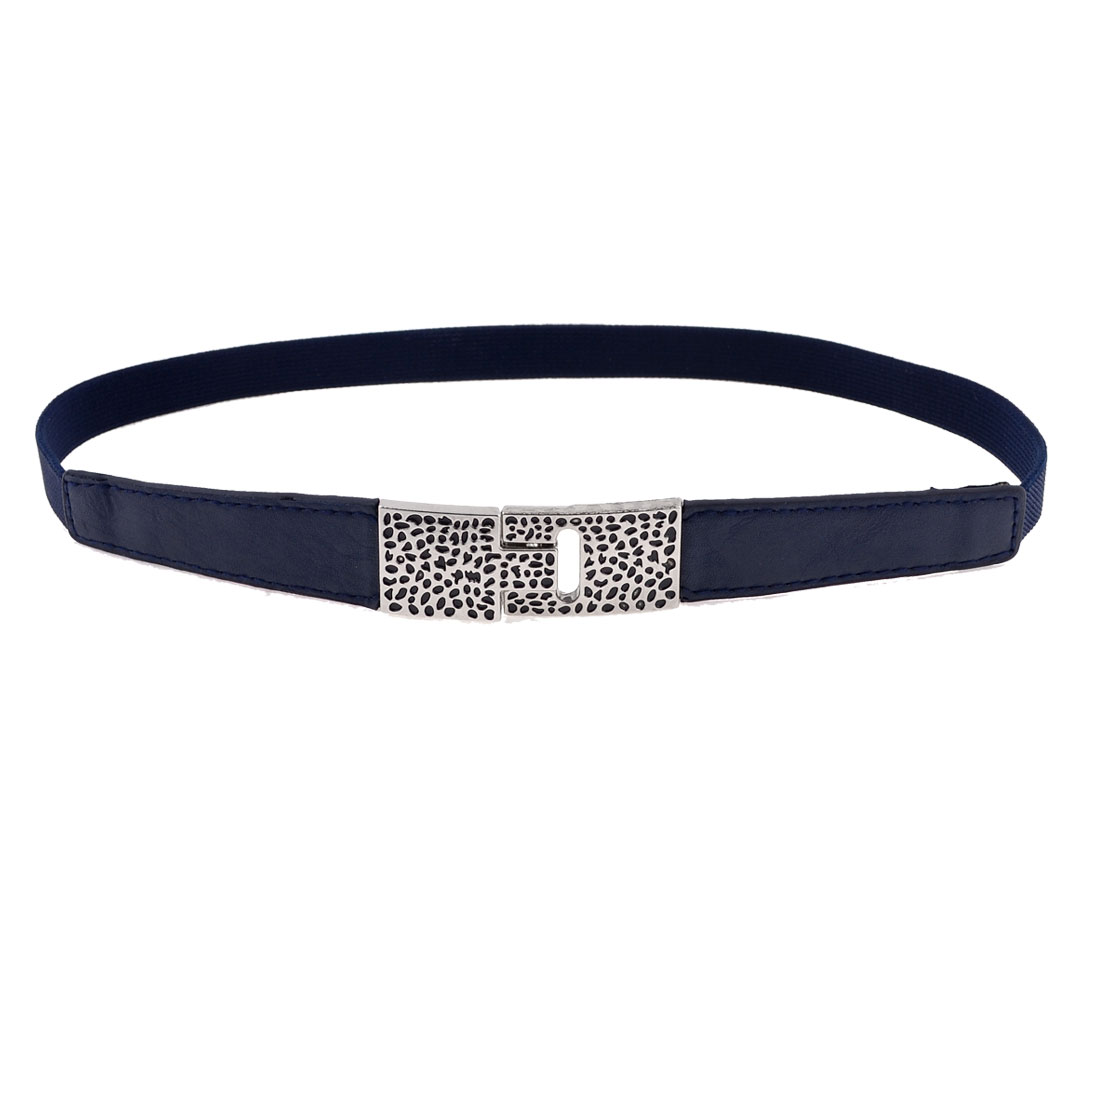 Cobblestones Print Rectangle Shape Interlock Buckle Spandex Waist Belt Navy Blue